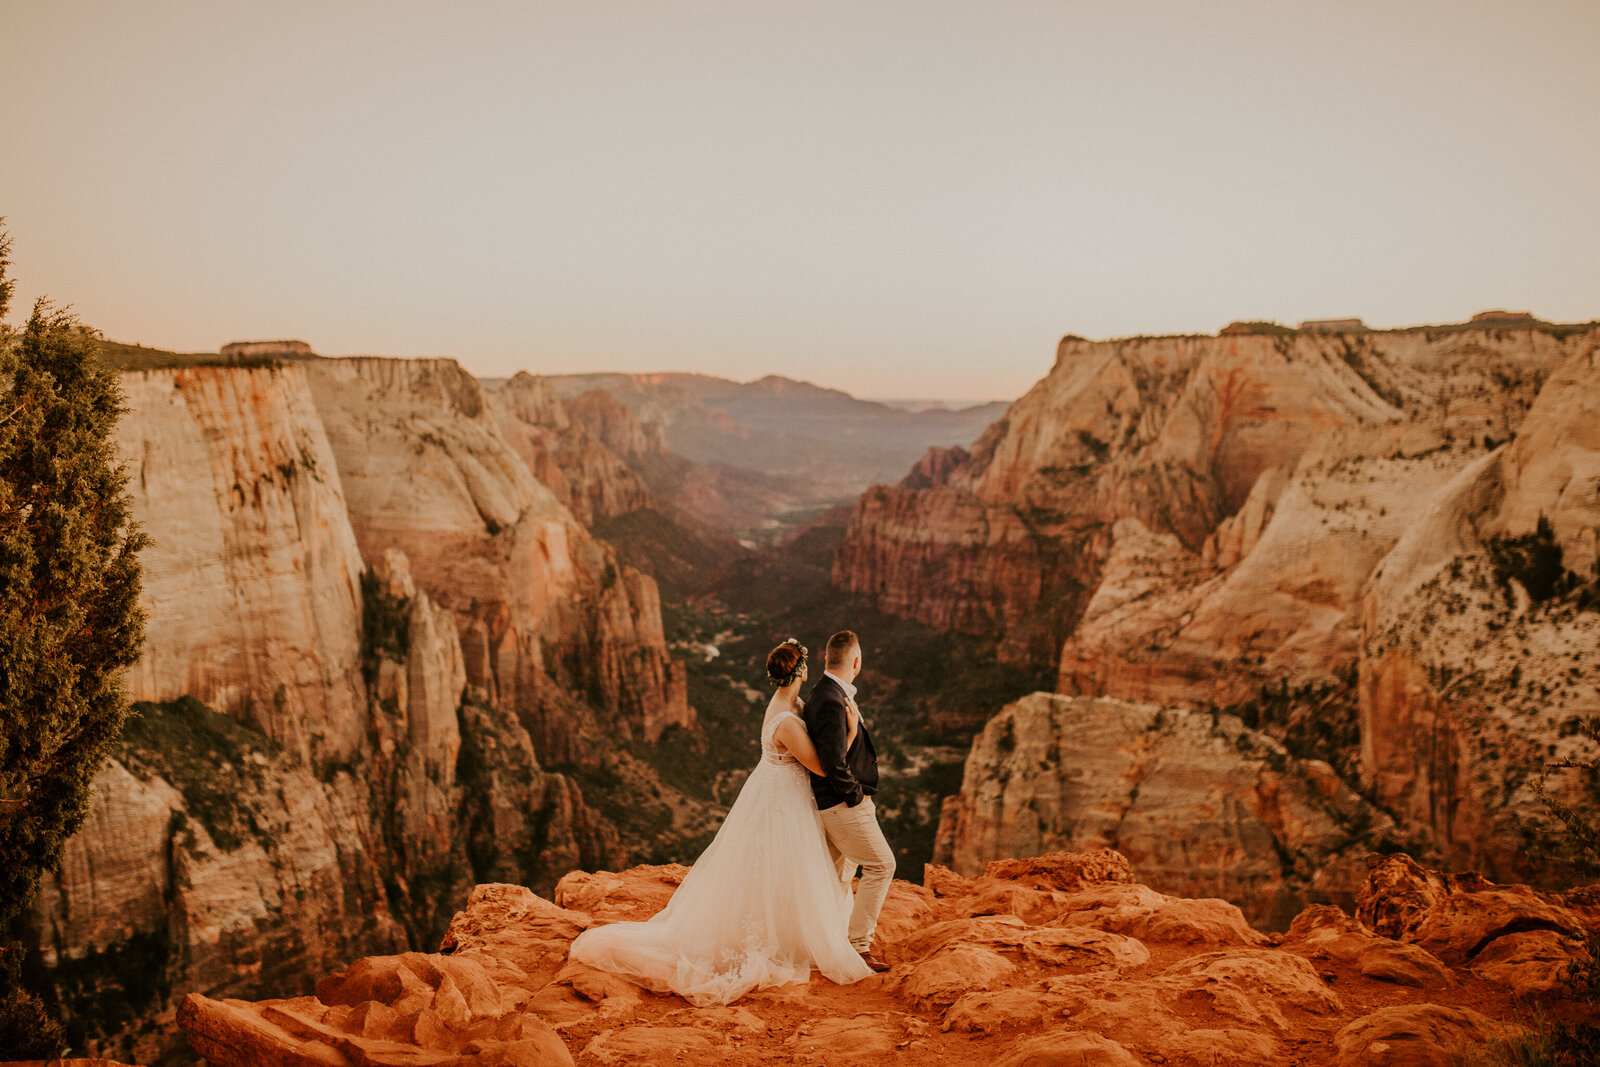 zion-national-park-utah-elopement-allison-slater-photography13